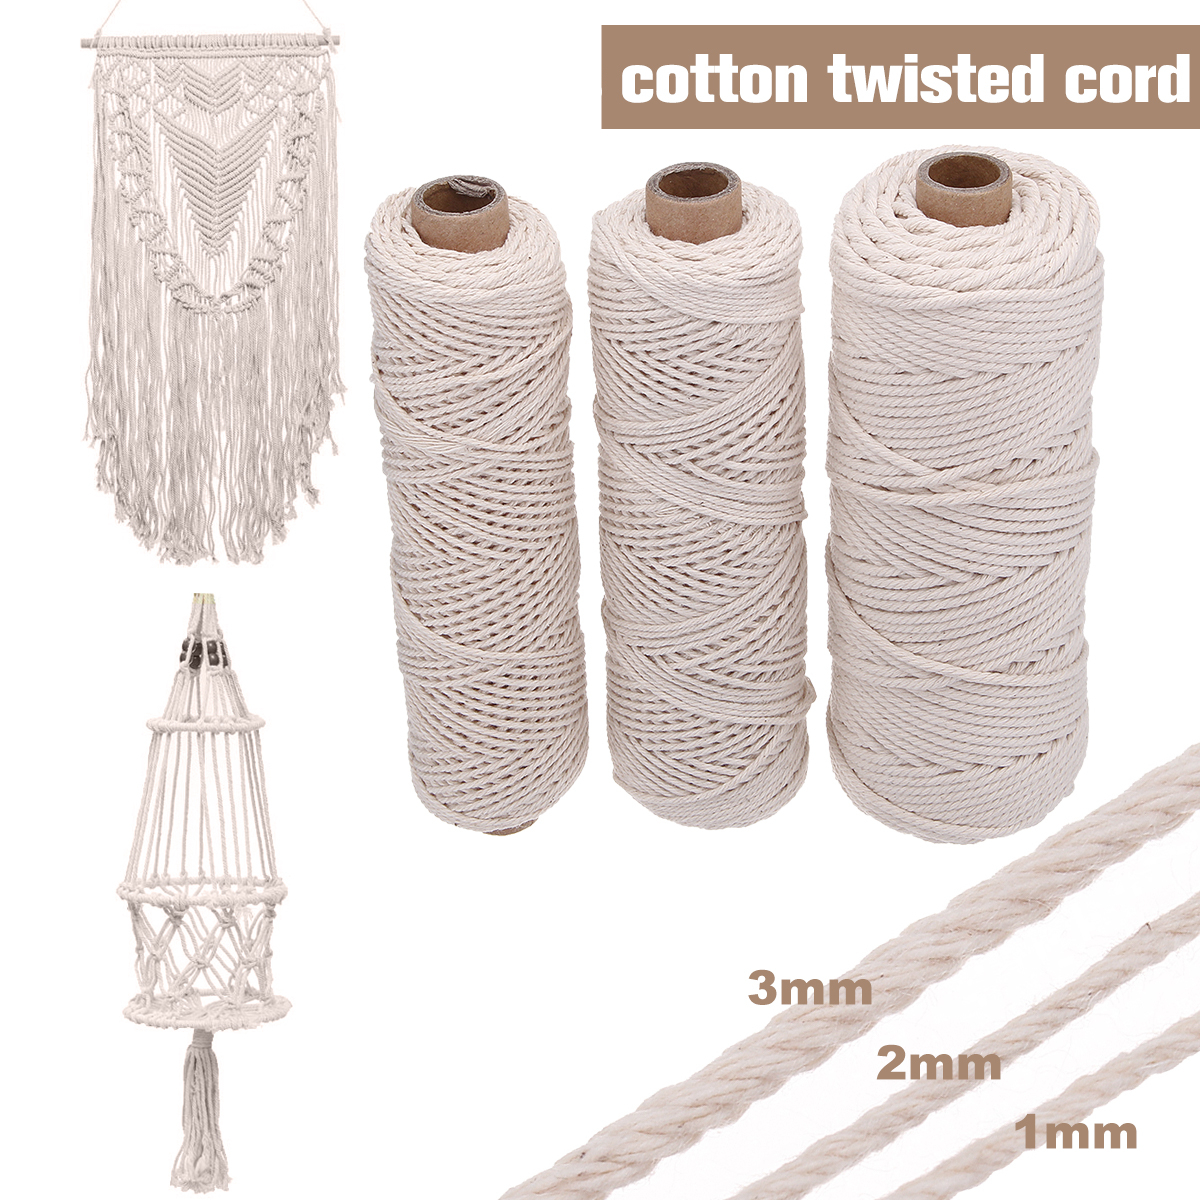 2mm Polyester Bakers Twine Look Cord Barley Twist Light Pull Jewellery 1 2 4m+